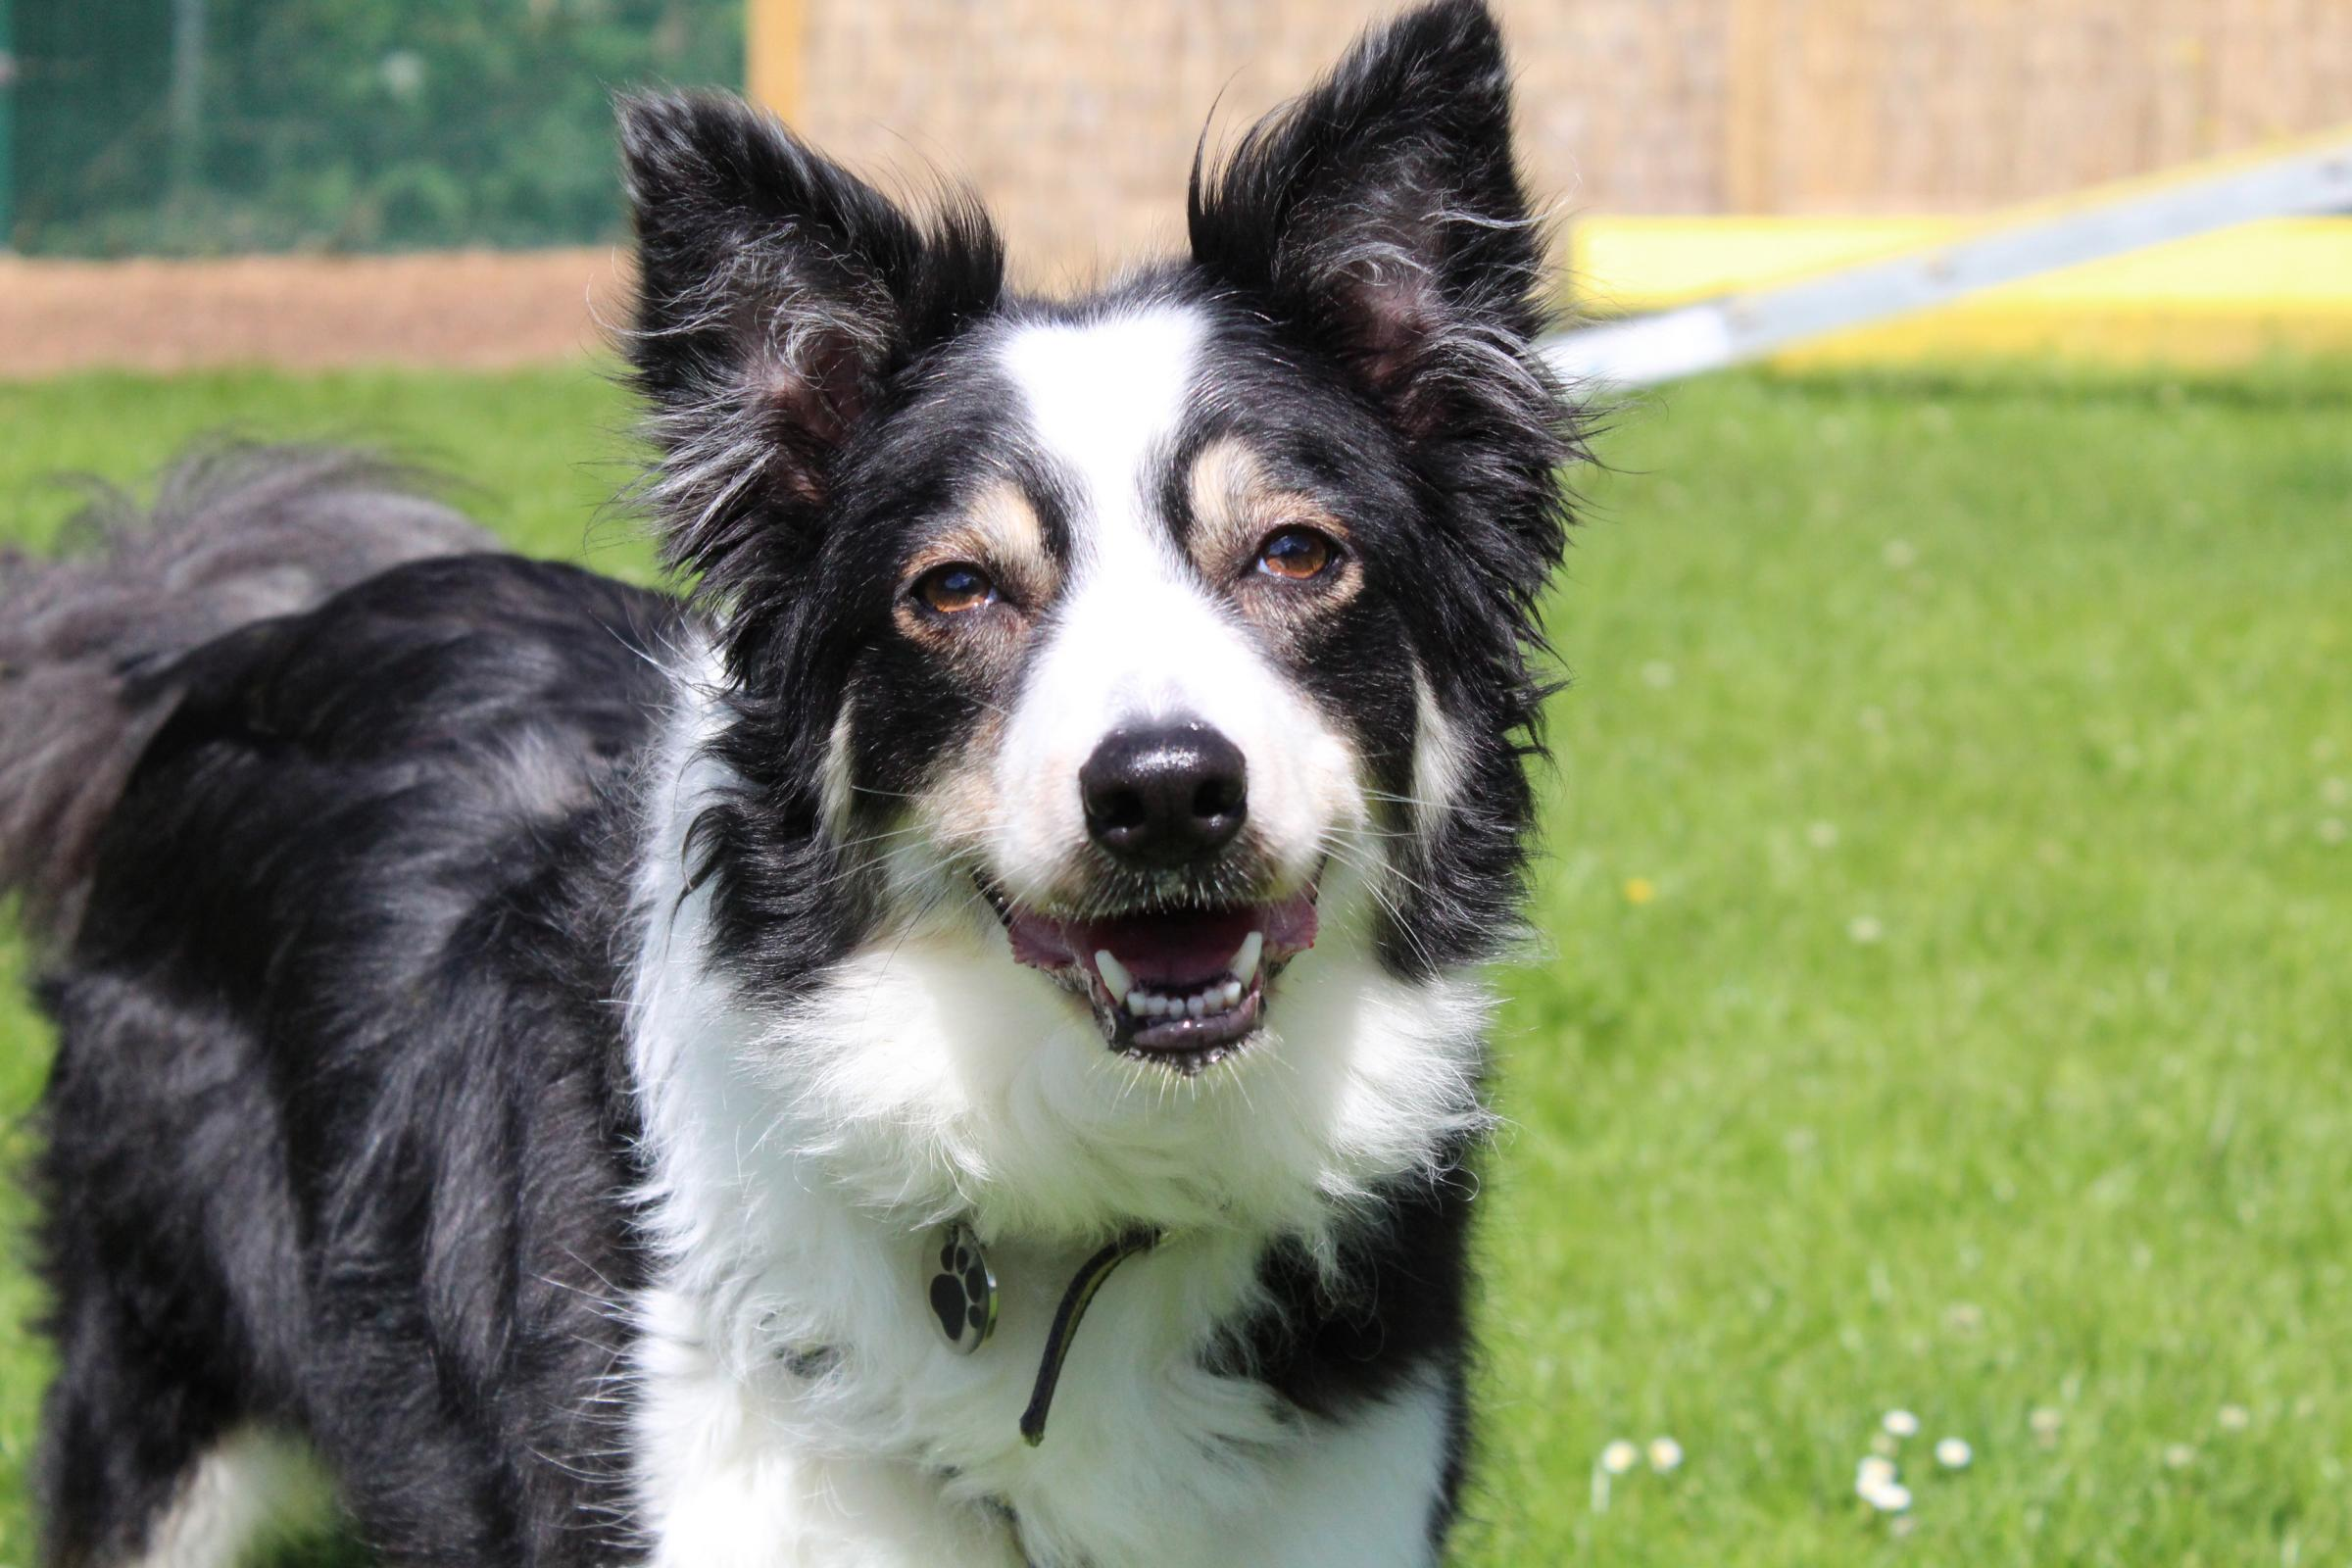 Sweet border collie Indy looking for her forever family